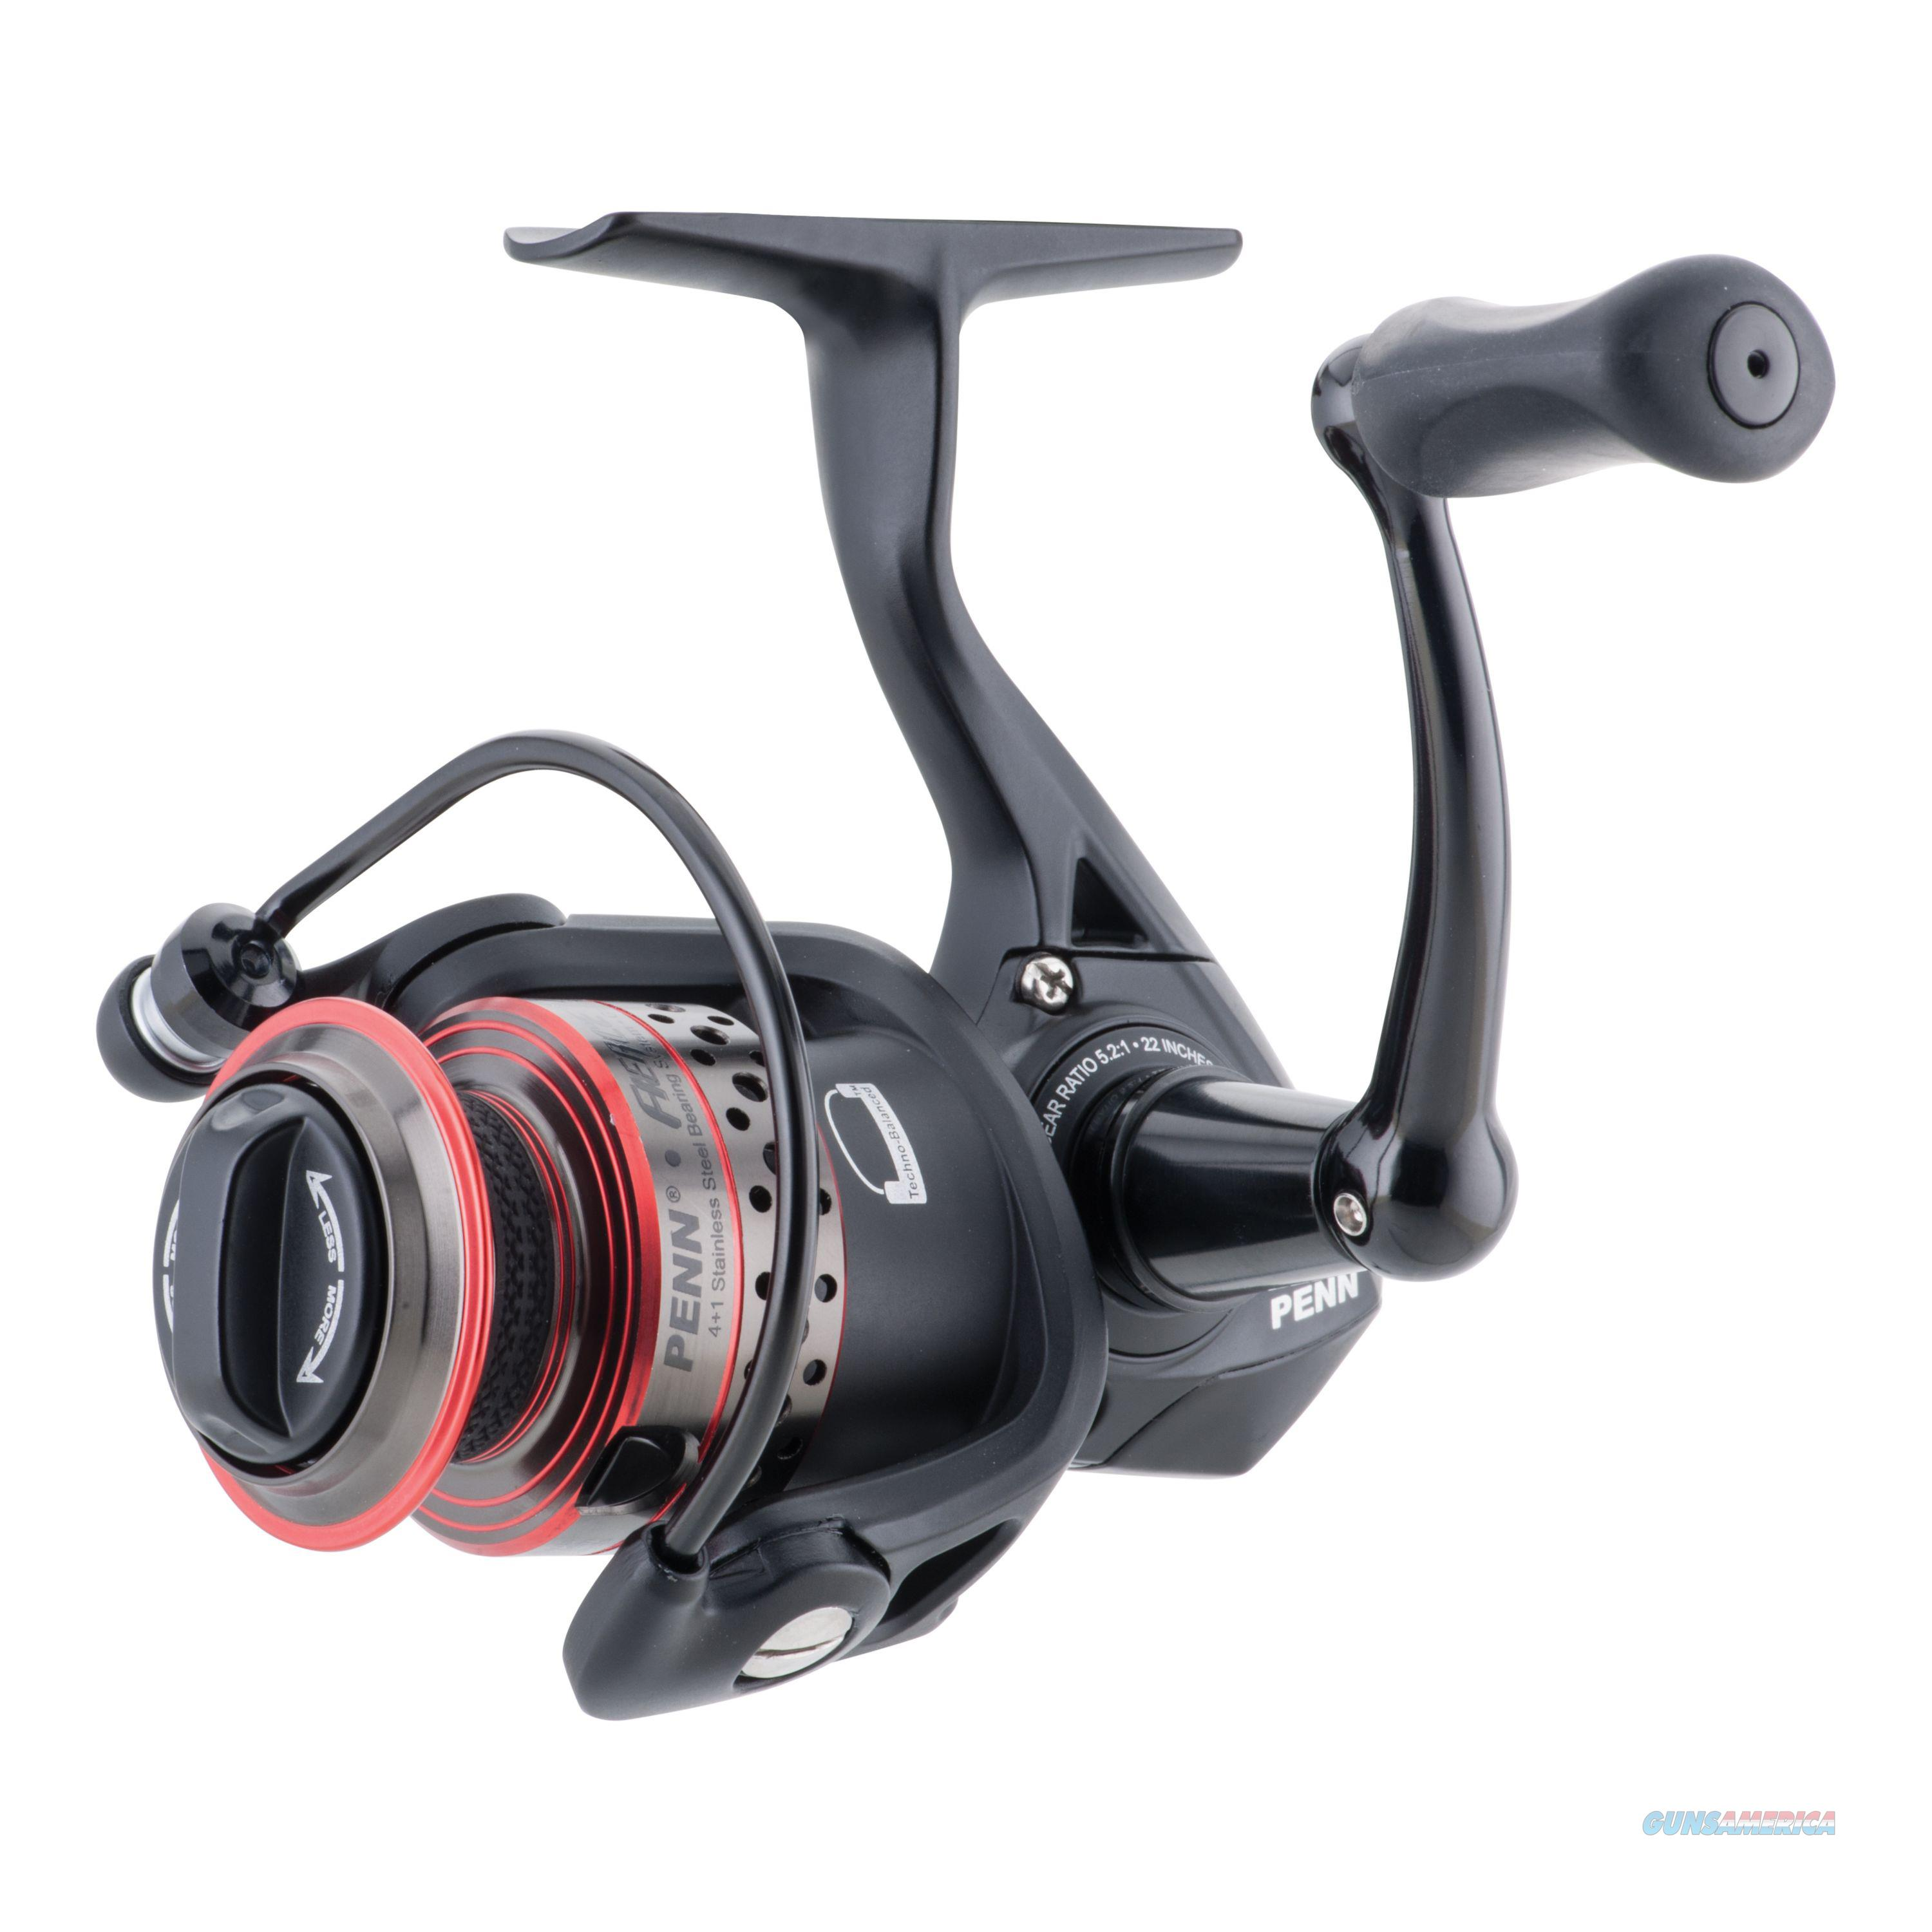 Penn Fishing Tackle Fierce Ii Spinning Reel FRCII8000  Non-Guns > Fishing/Spearfishing